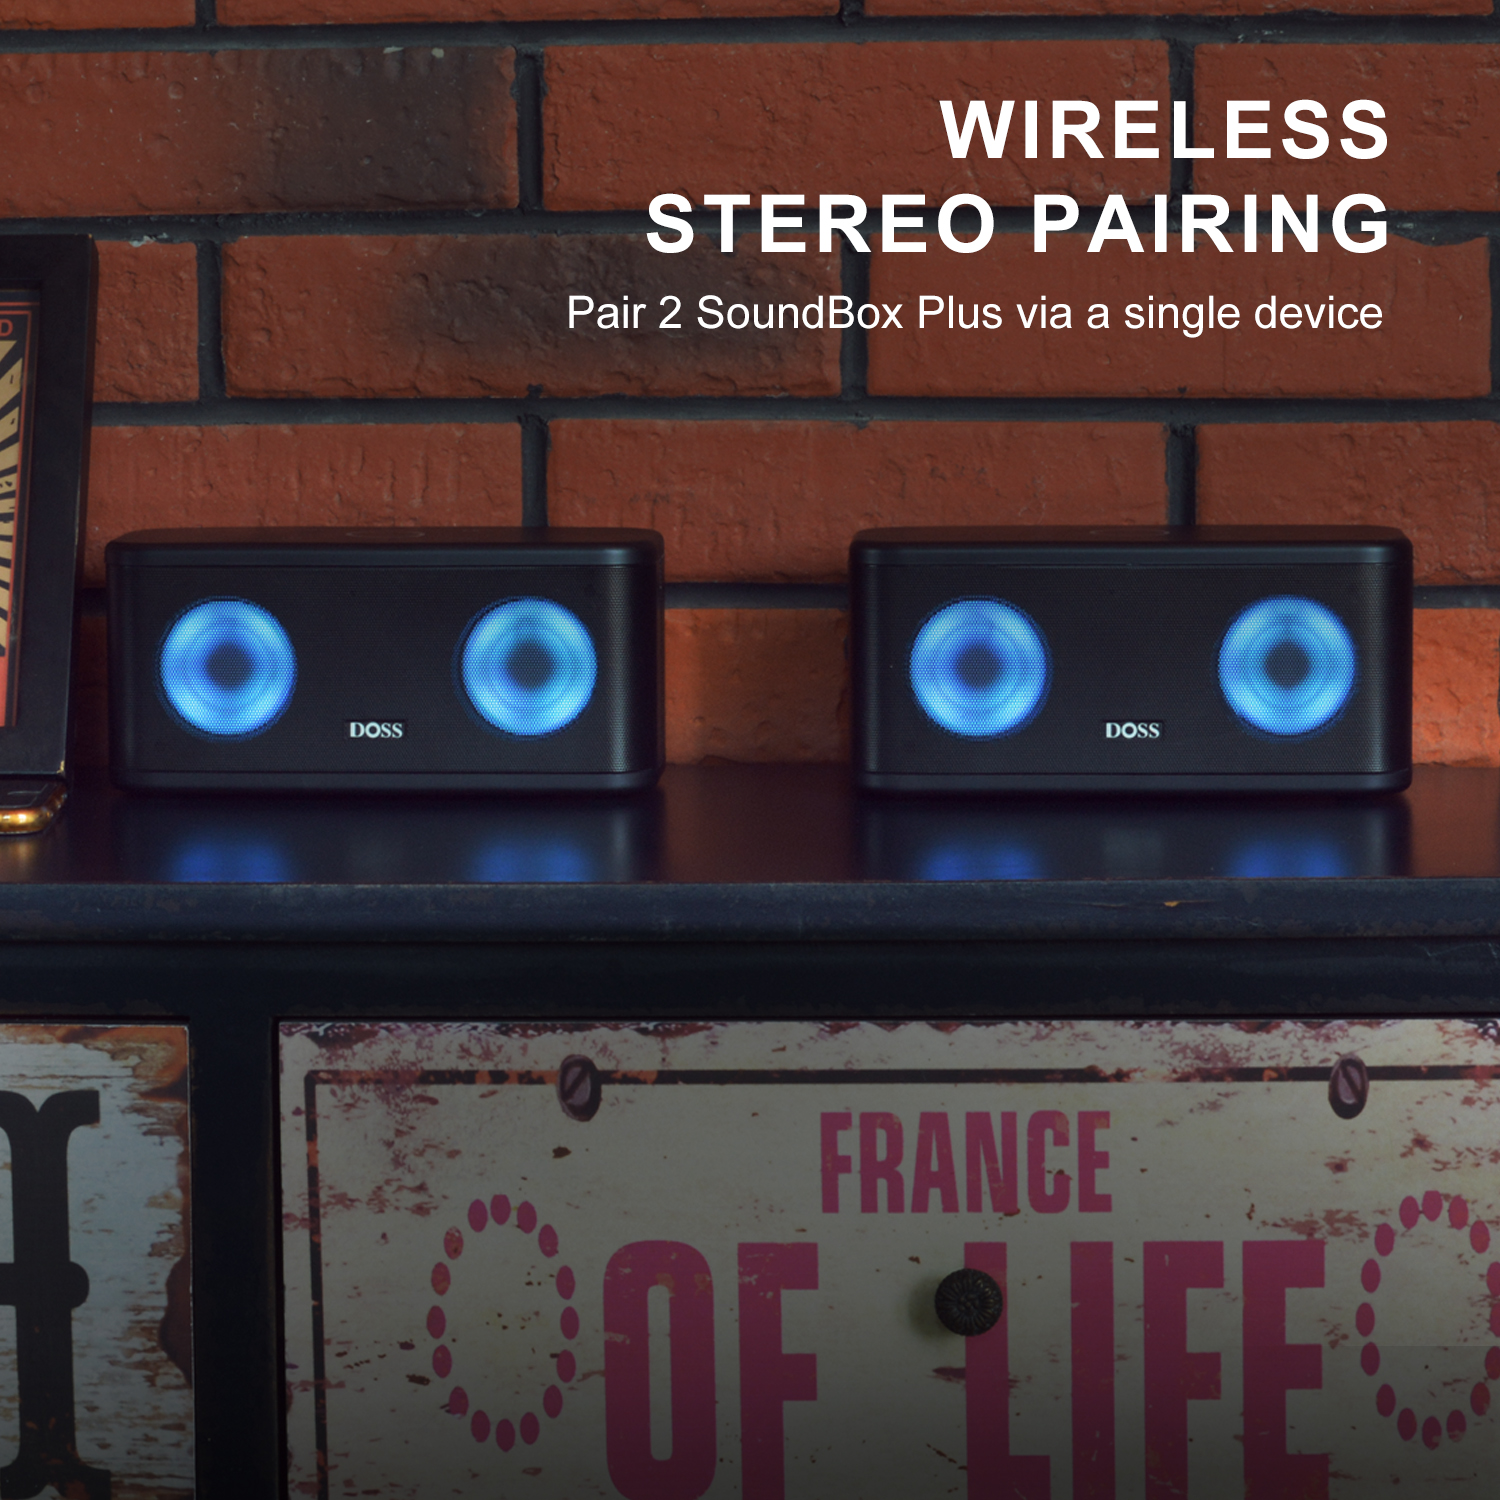 Mixed Colors Lights Booming Bass 66FT Wireless Range,15 Hrs Playtime-Black DOSS SoundBox Pro+ Wireless Bluetooth Speaker with 24W Impressive Sound Bluetooth Speakers IPX5 Wireless Stereo Pairing